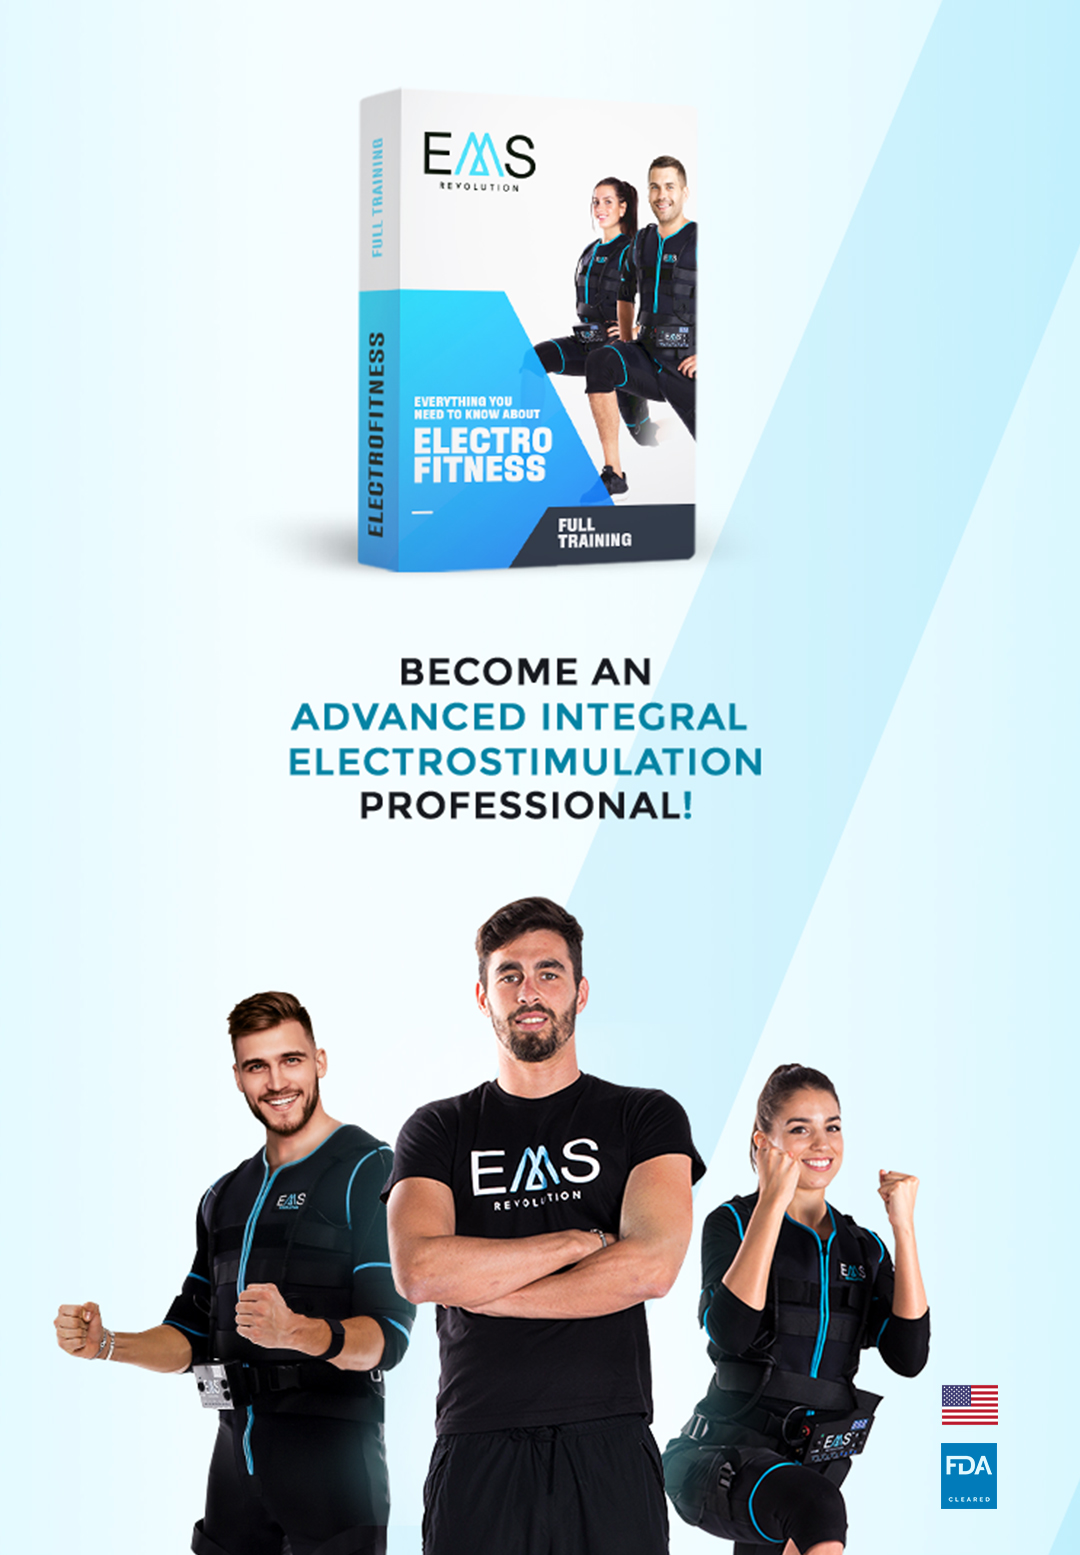 Free course with basic concepts of electrostimulation